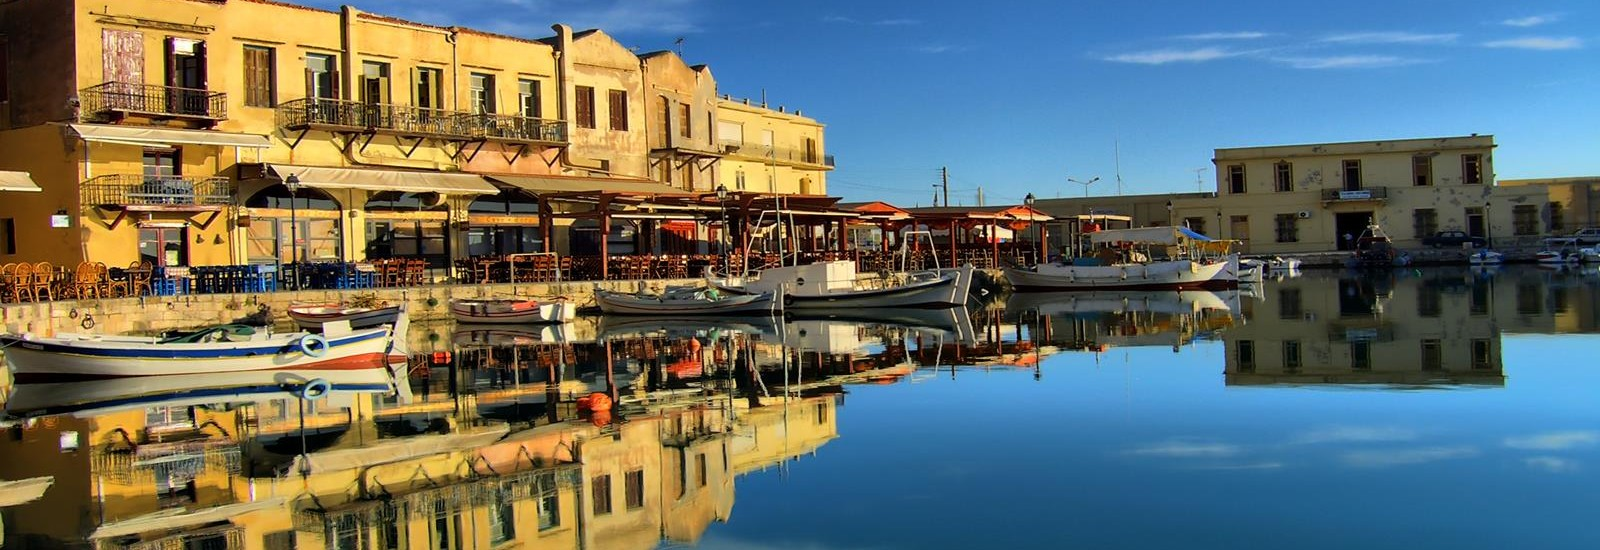 Old port Rethymnon